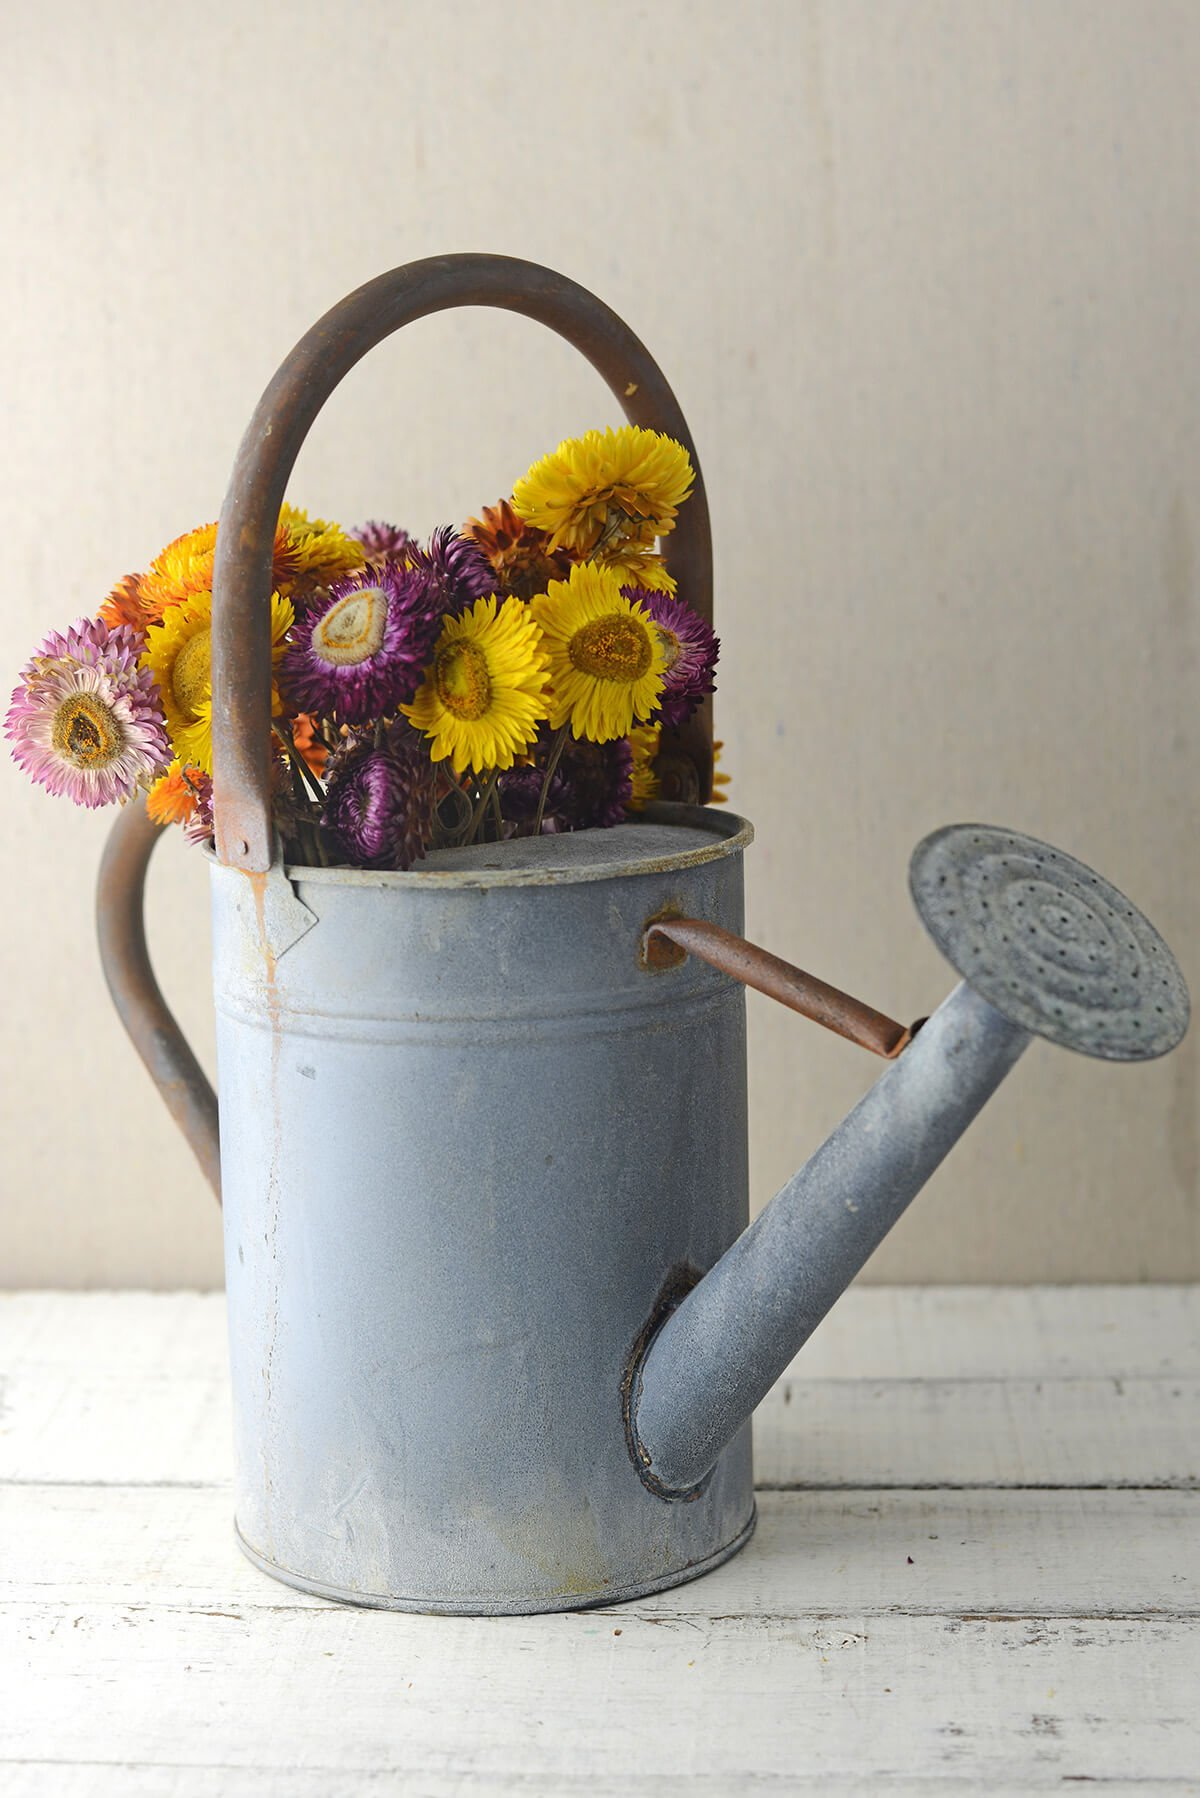 Dexon Power Rustic Zinc Watering Can With Large Handle